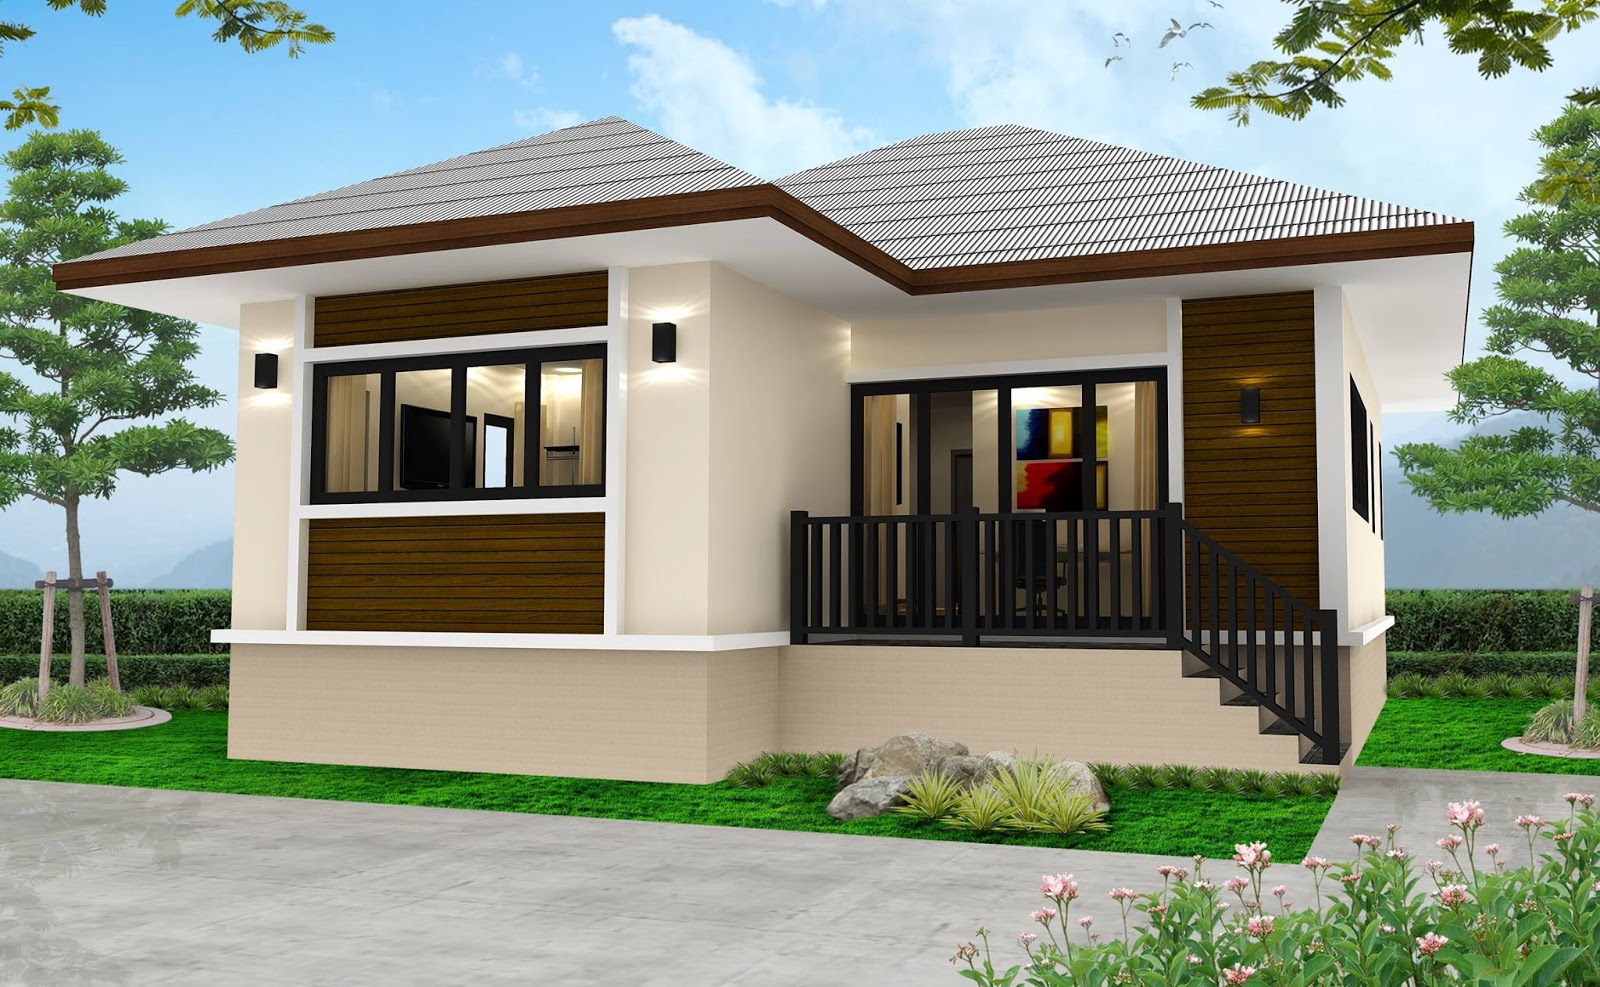 A bungalow house design is one of the most common built houses today. The main benefit of bungalows is to have your living space all on one storey. If you are looking for a house design check out some of these 50 photos of bungalow house design and find the perfect home for your family.